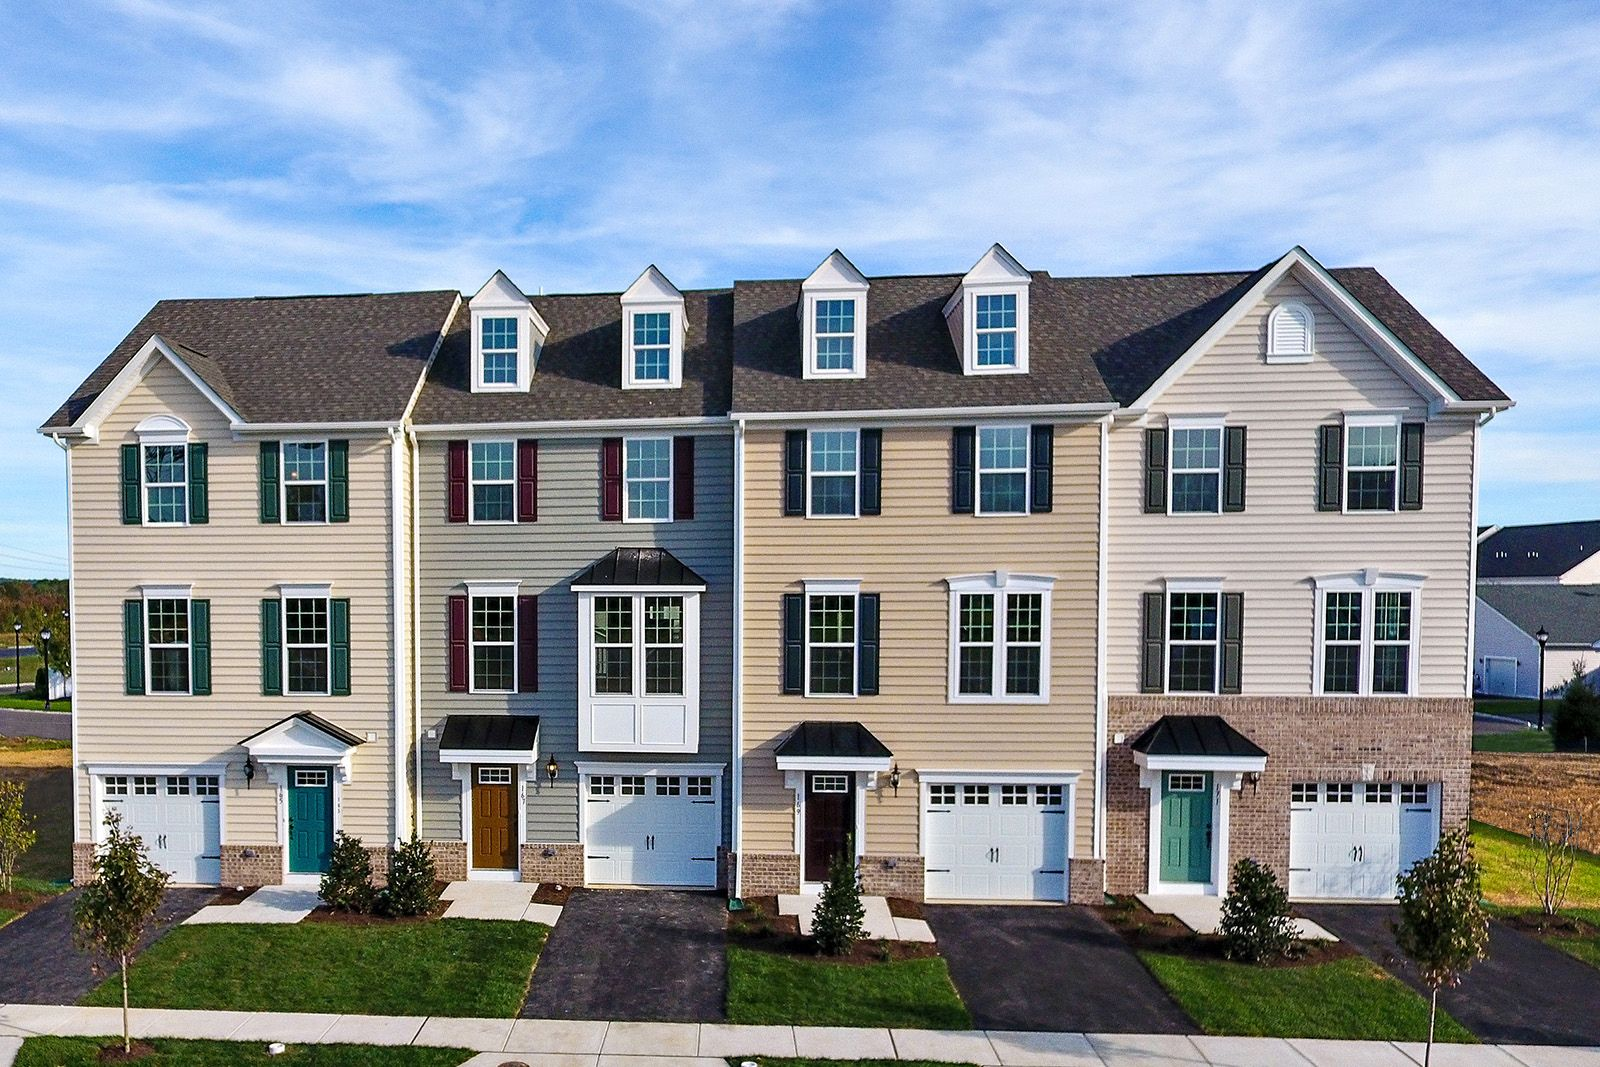 WELCOME TO ANCHOR POINT IN INDIAN HEAD, MD:1-Car Garage Townhomes in a quiet wooded community right off Rt. 210 and minutes to the Potomac River. From the mid $300s.Join the VIP List Today!